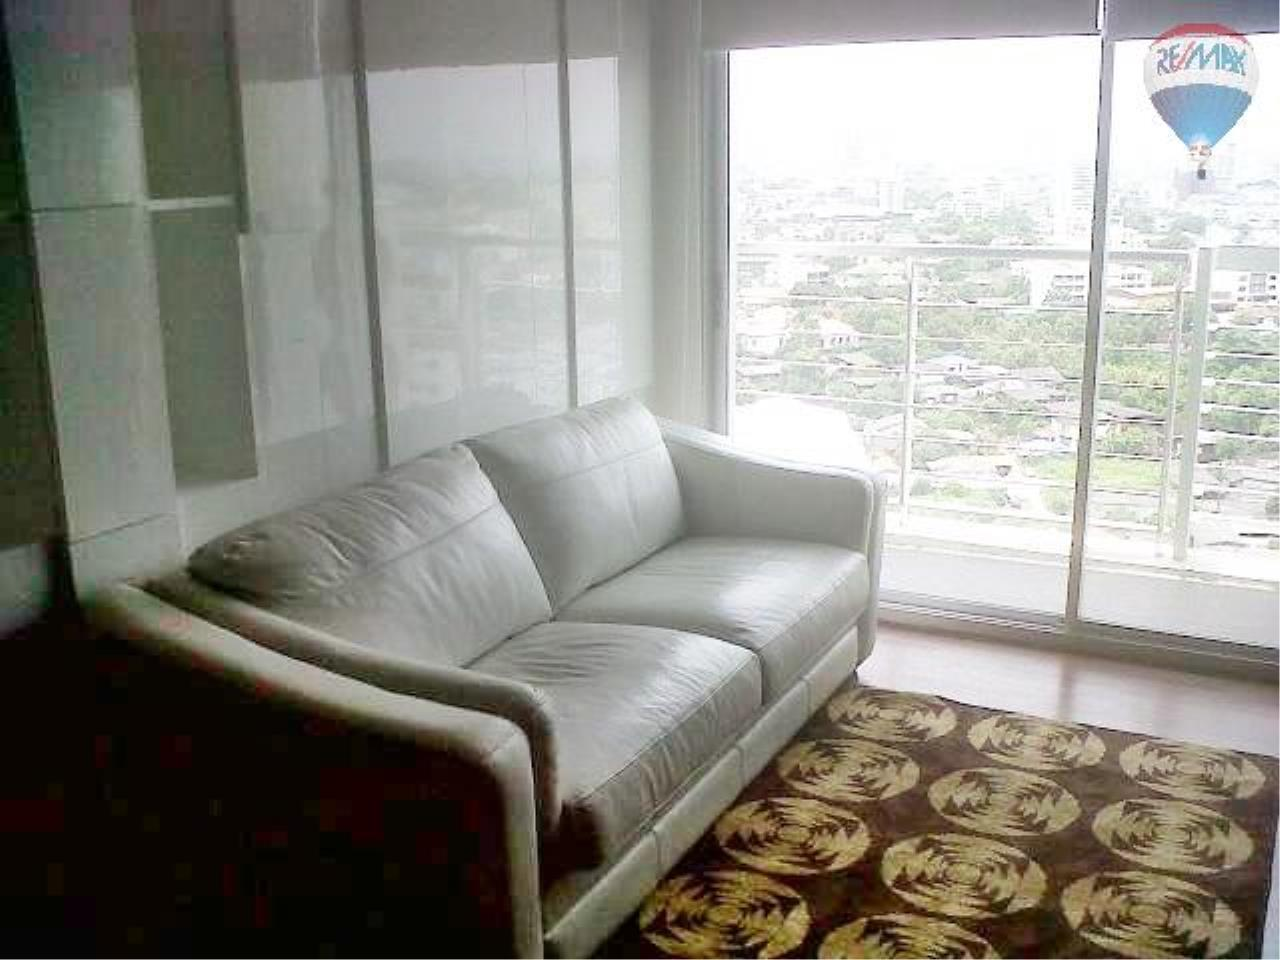 RE/MAX Properties Agency's Condominium for rent 1 bedroom 51 Sq.m. at Le Luk 5